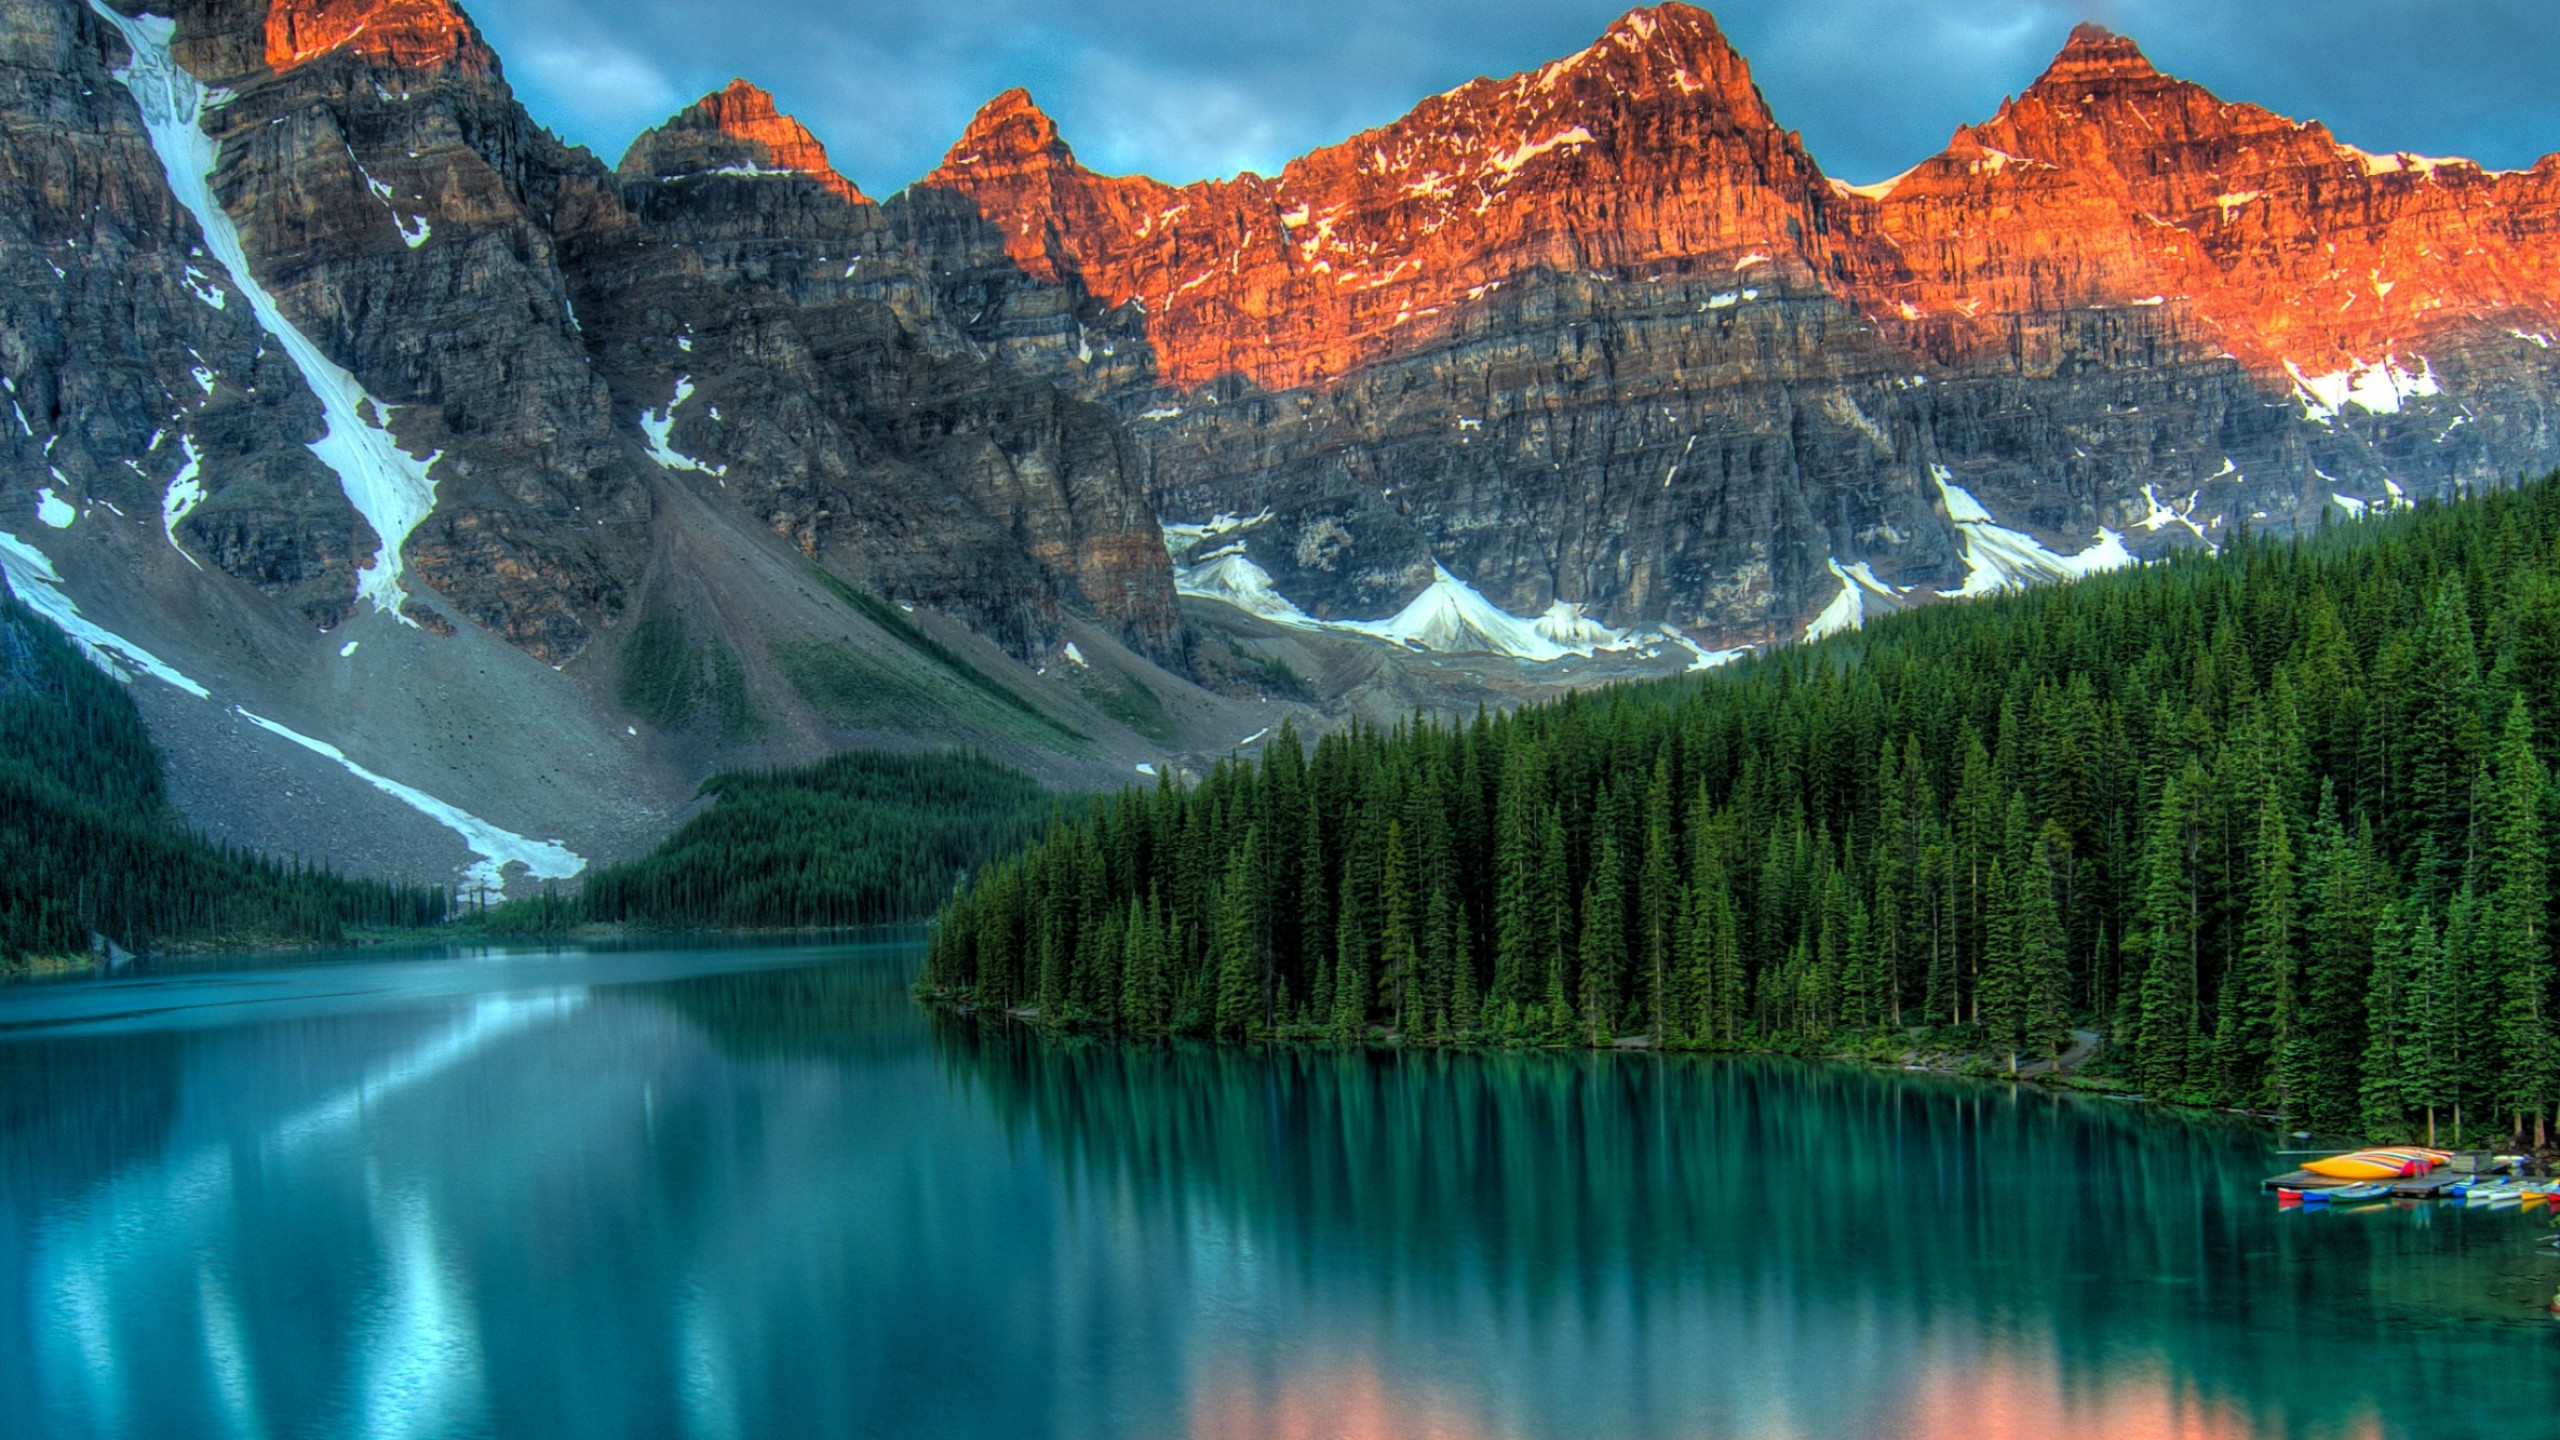 Wallpapers 2560x1440 Cars Wallpaper Moraine Lake Banff Canada Mountains Forest